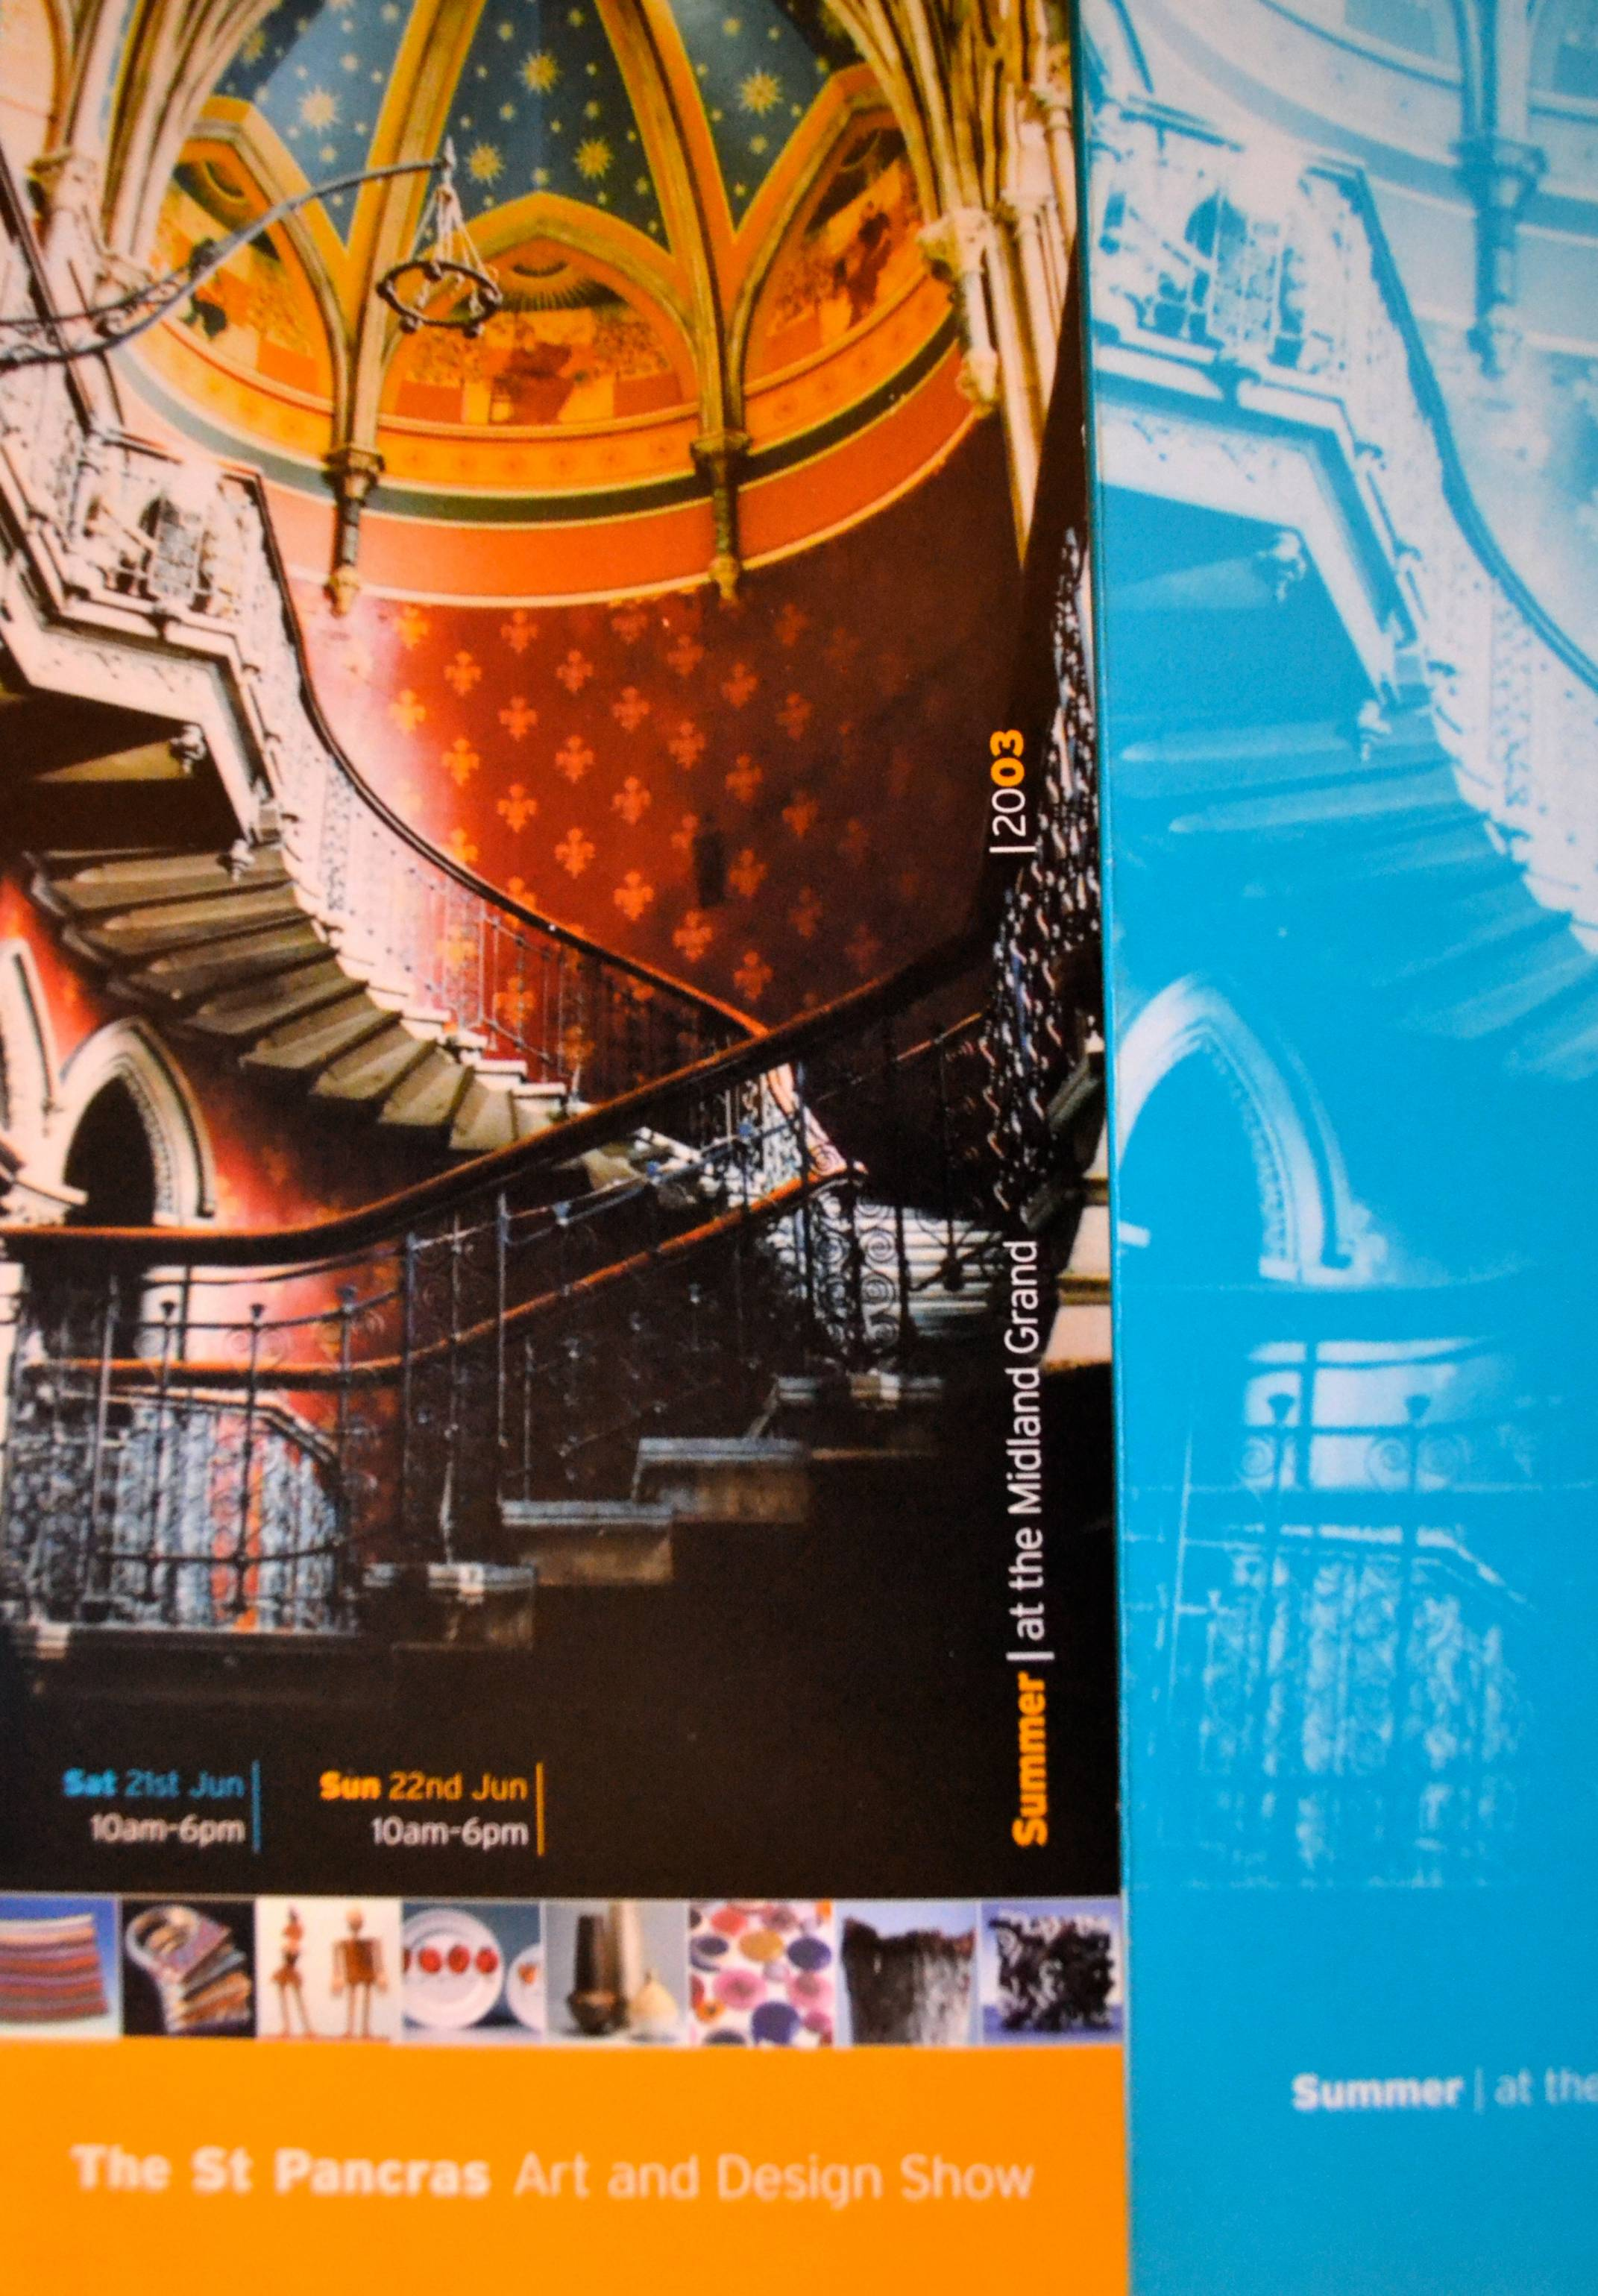 Exhibition 'The Midland Grand Summer Show' - St Pancras Chambers, London 2003